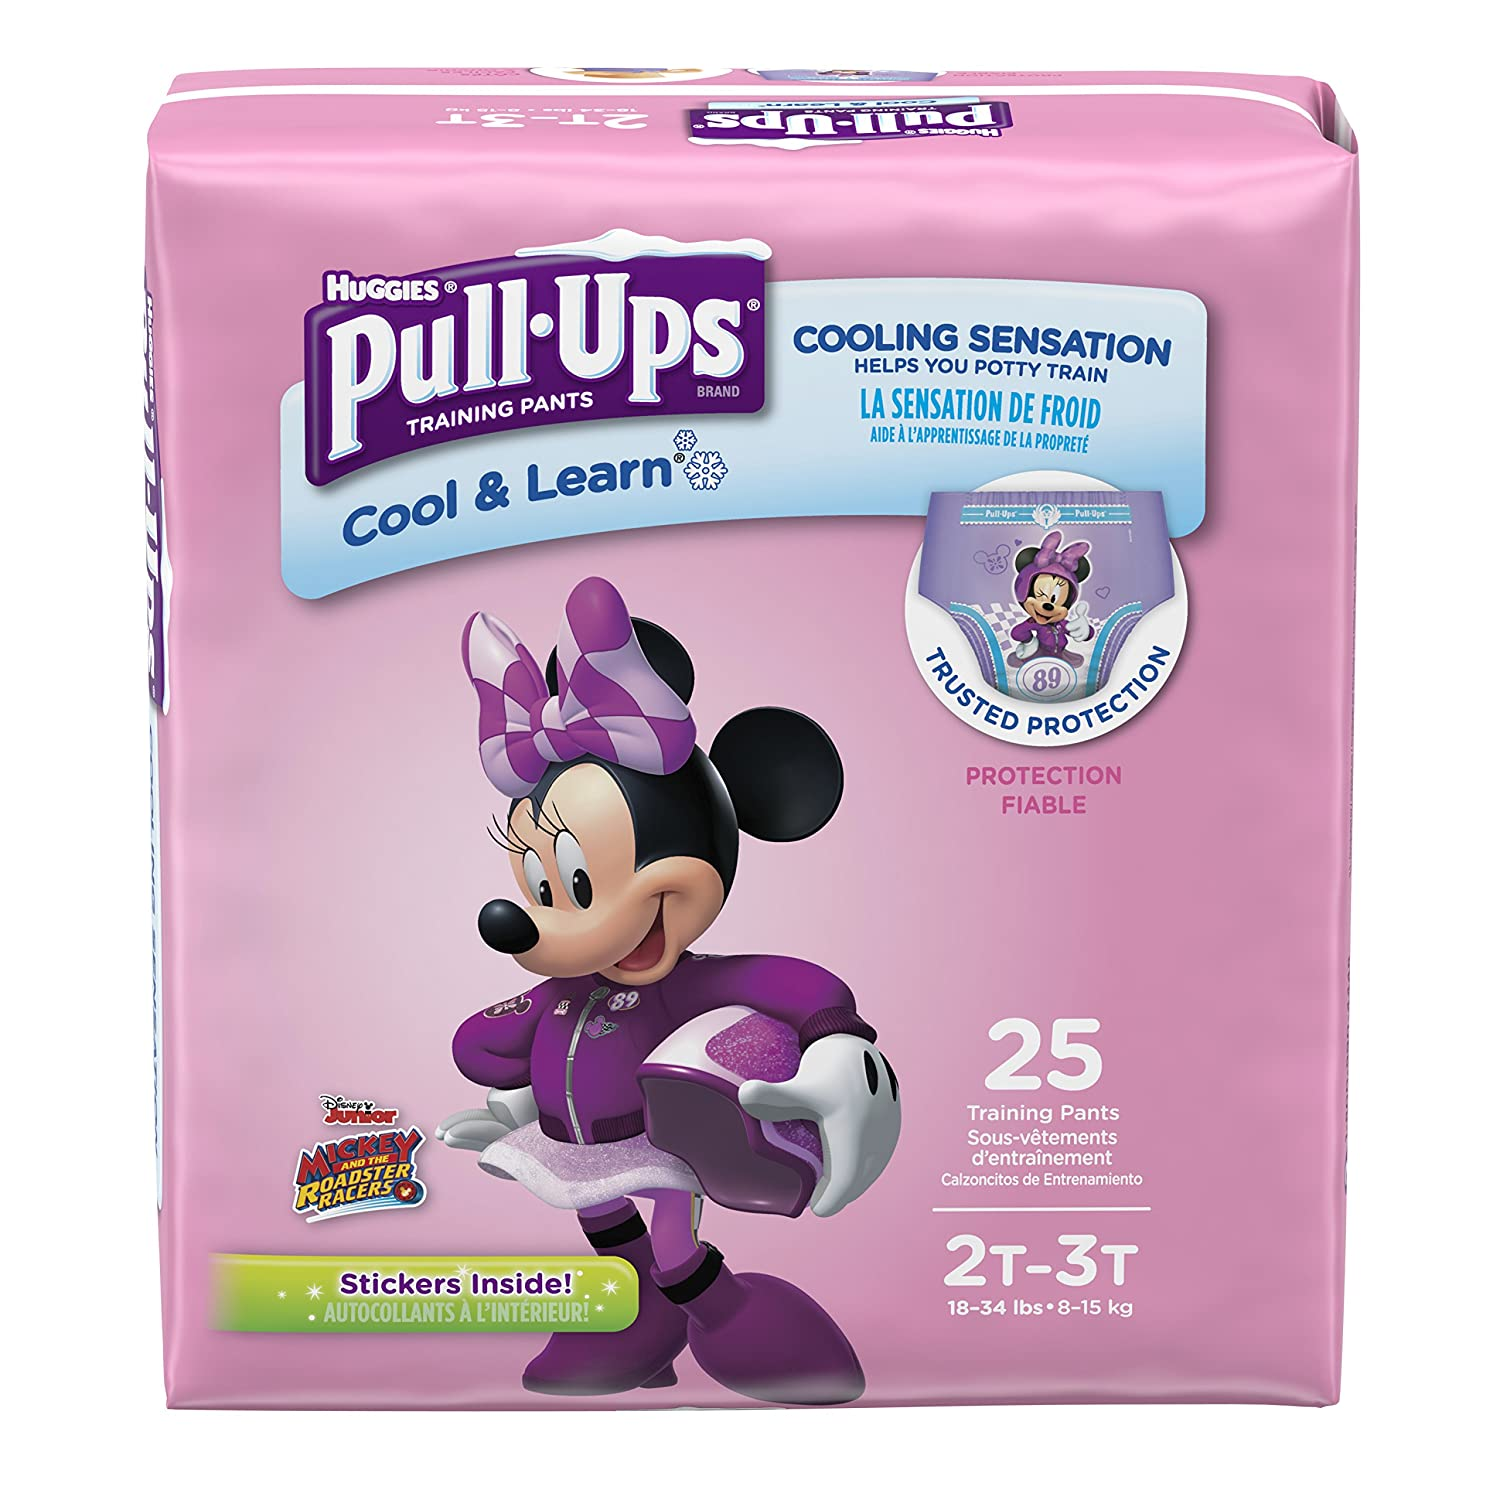 Pull-Ups Cool /& Learn Training Pants for Girls 25 Count 18-34 lb. 2T-3T